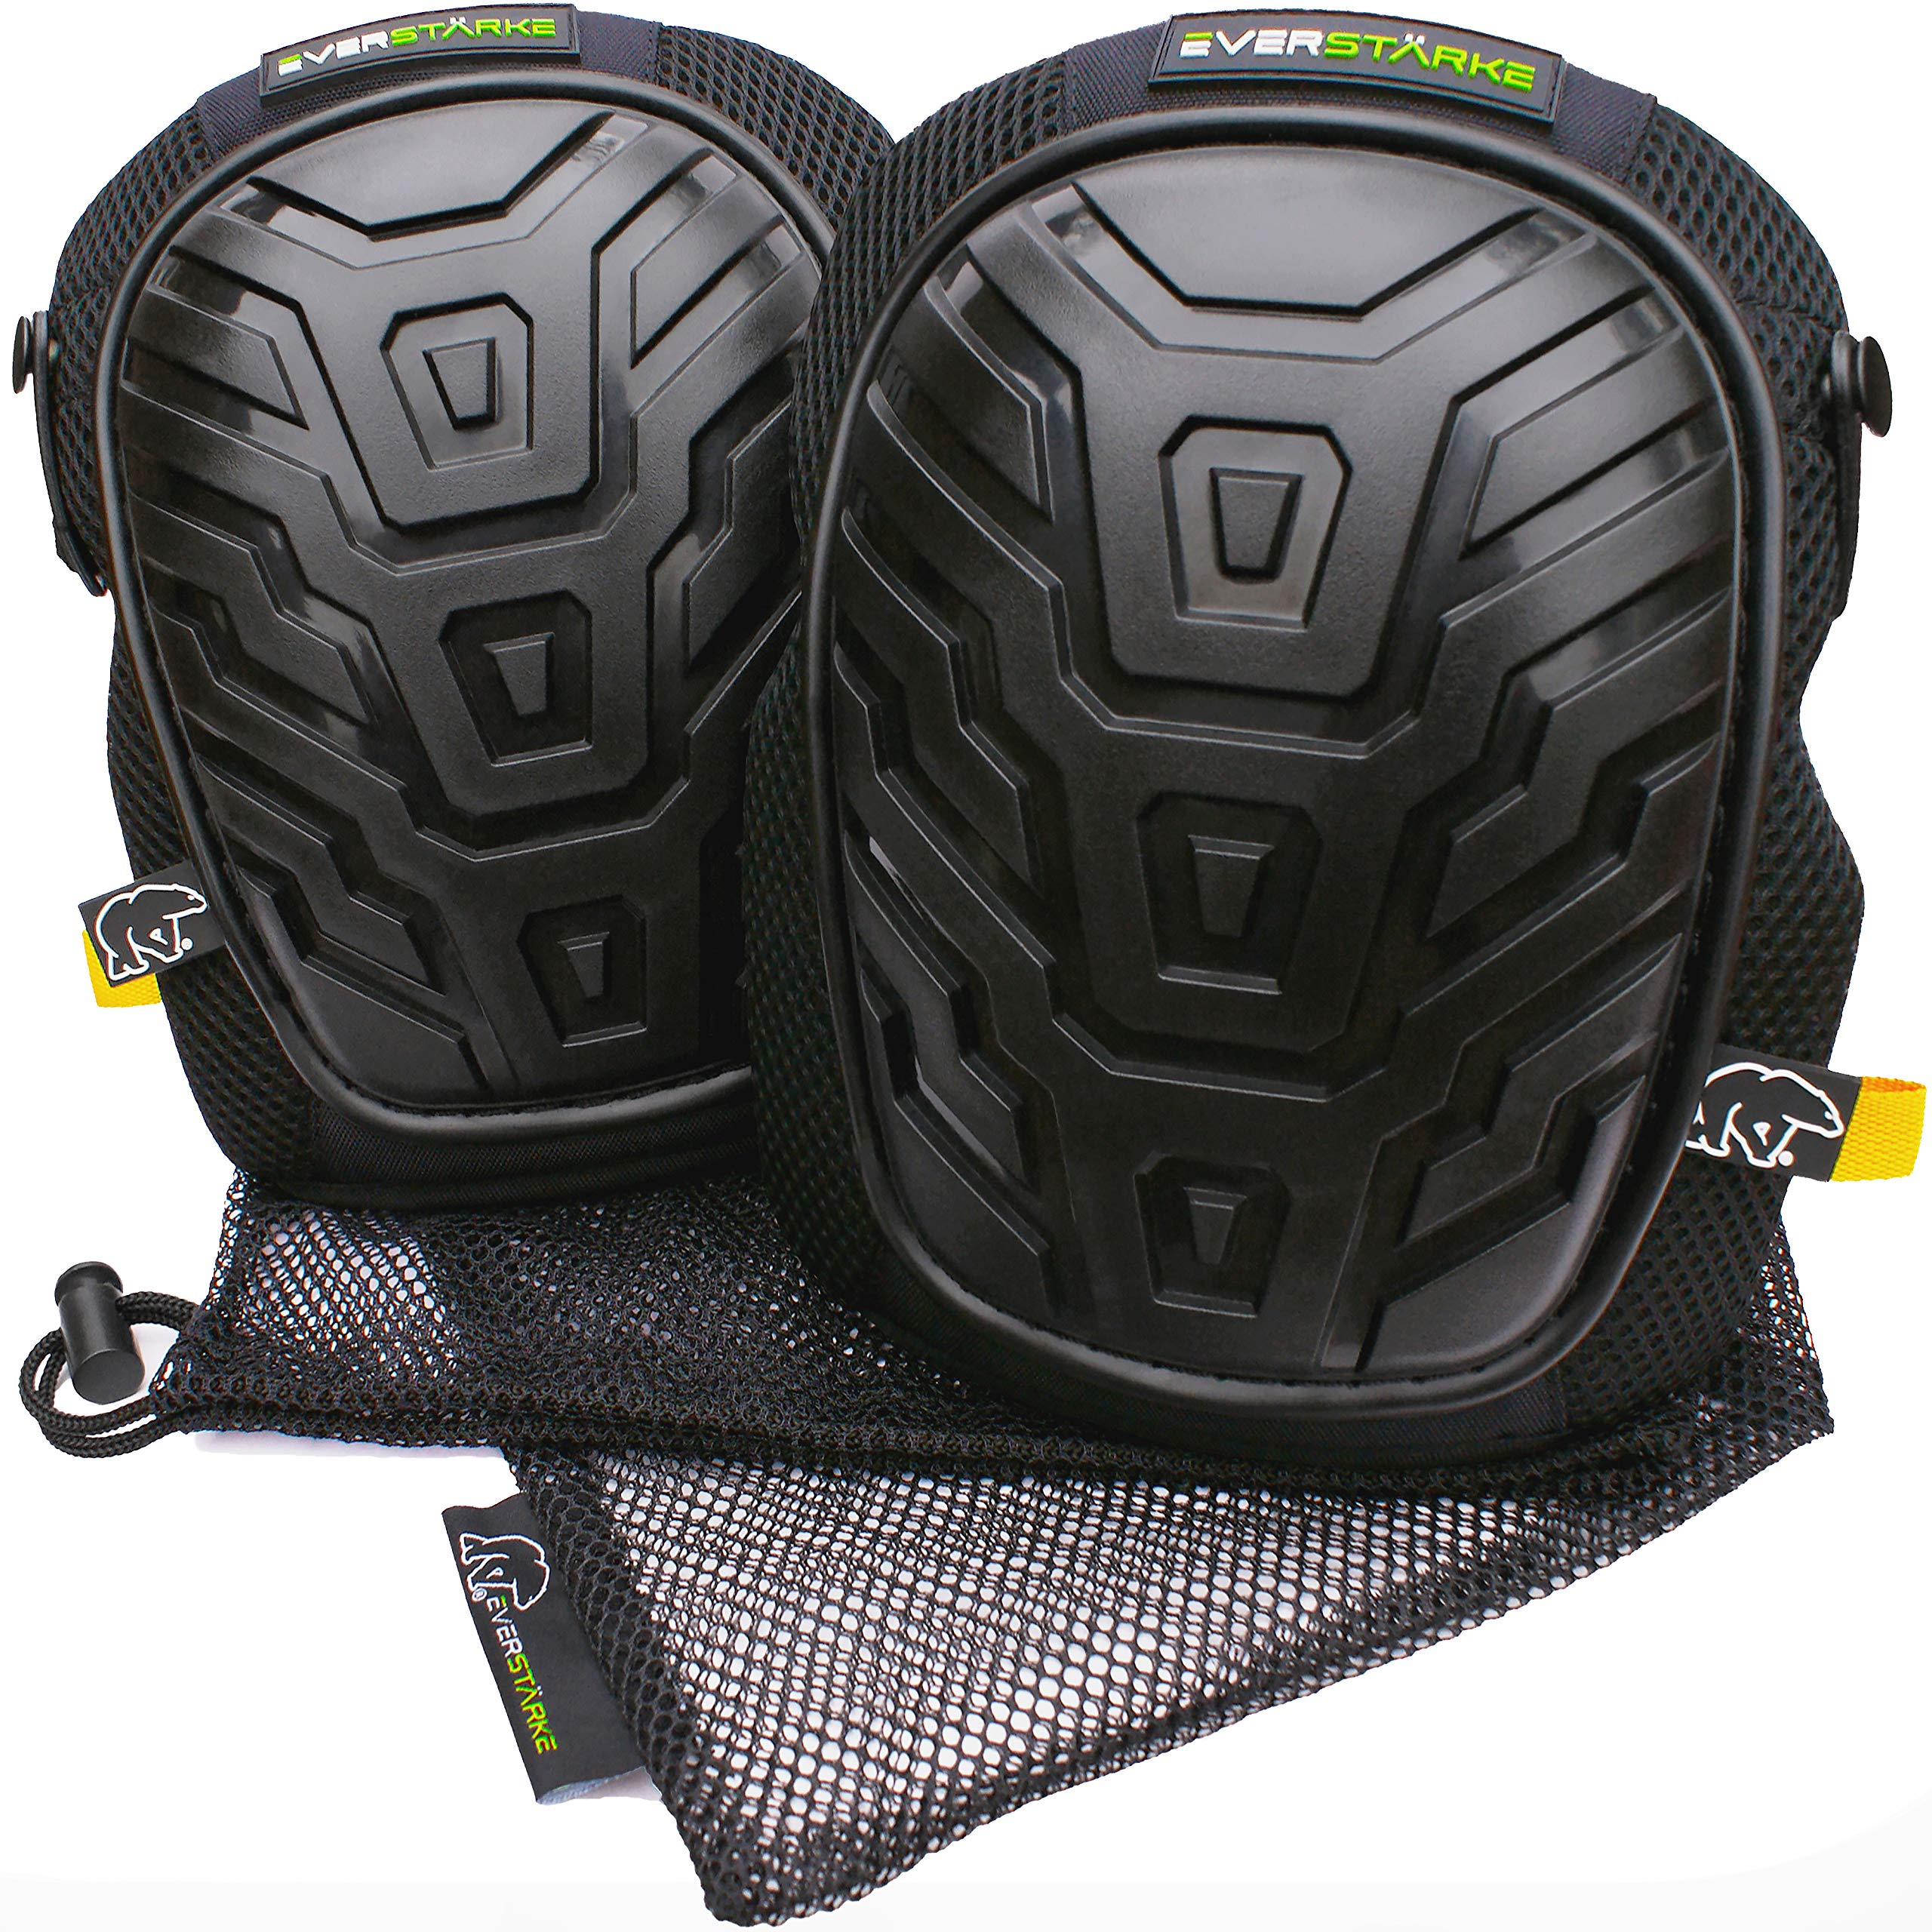 LIMITED TIME OFFER Everstärke Premium Professional Knee Pads - Comfortable Heavy Duty Foam and Soft Gel - Non-Slip Adjustable Velcro and Neoprene Straps - For Construction Work, Gardening, Cleaning